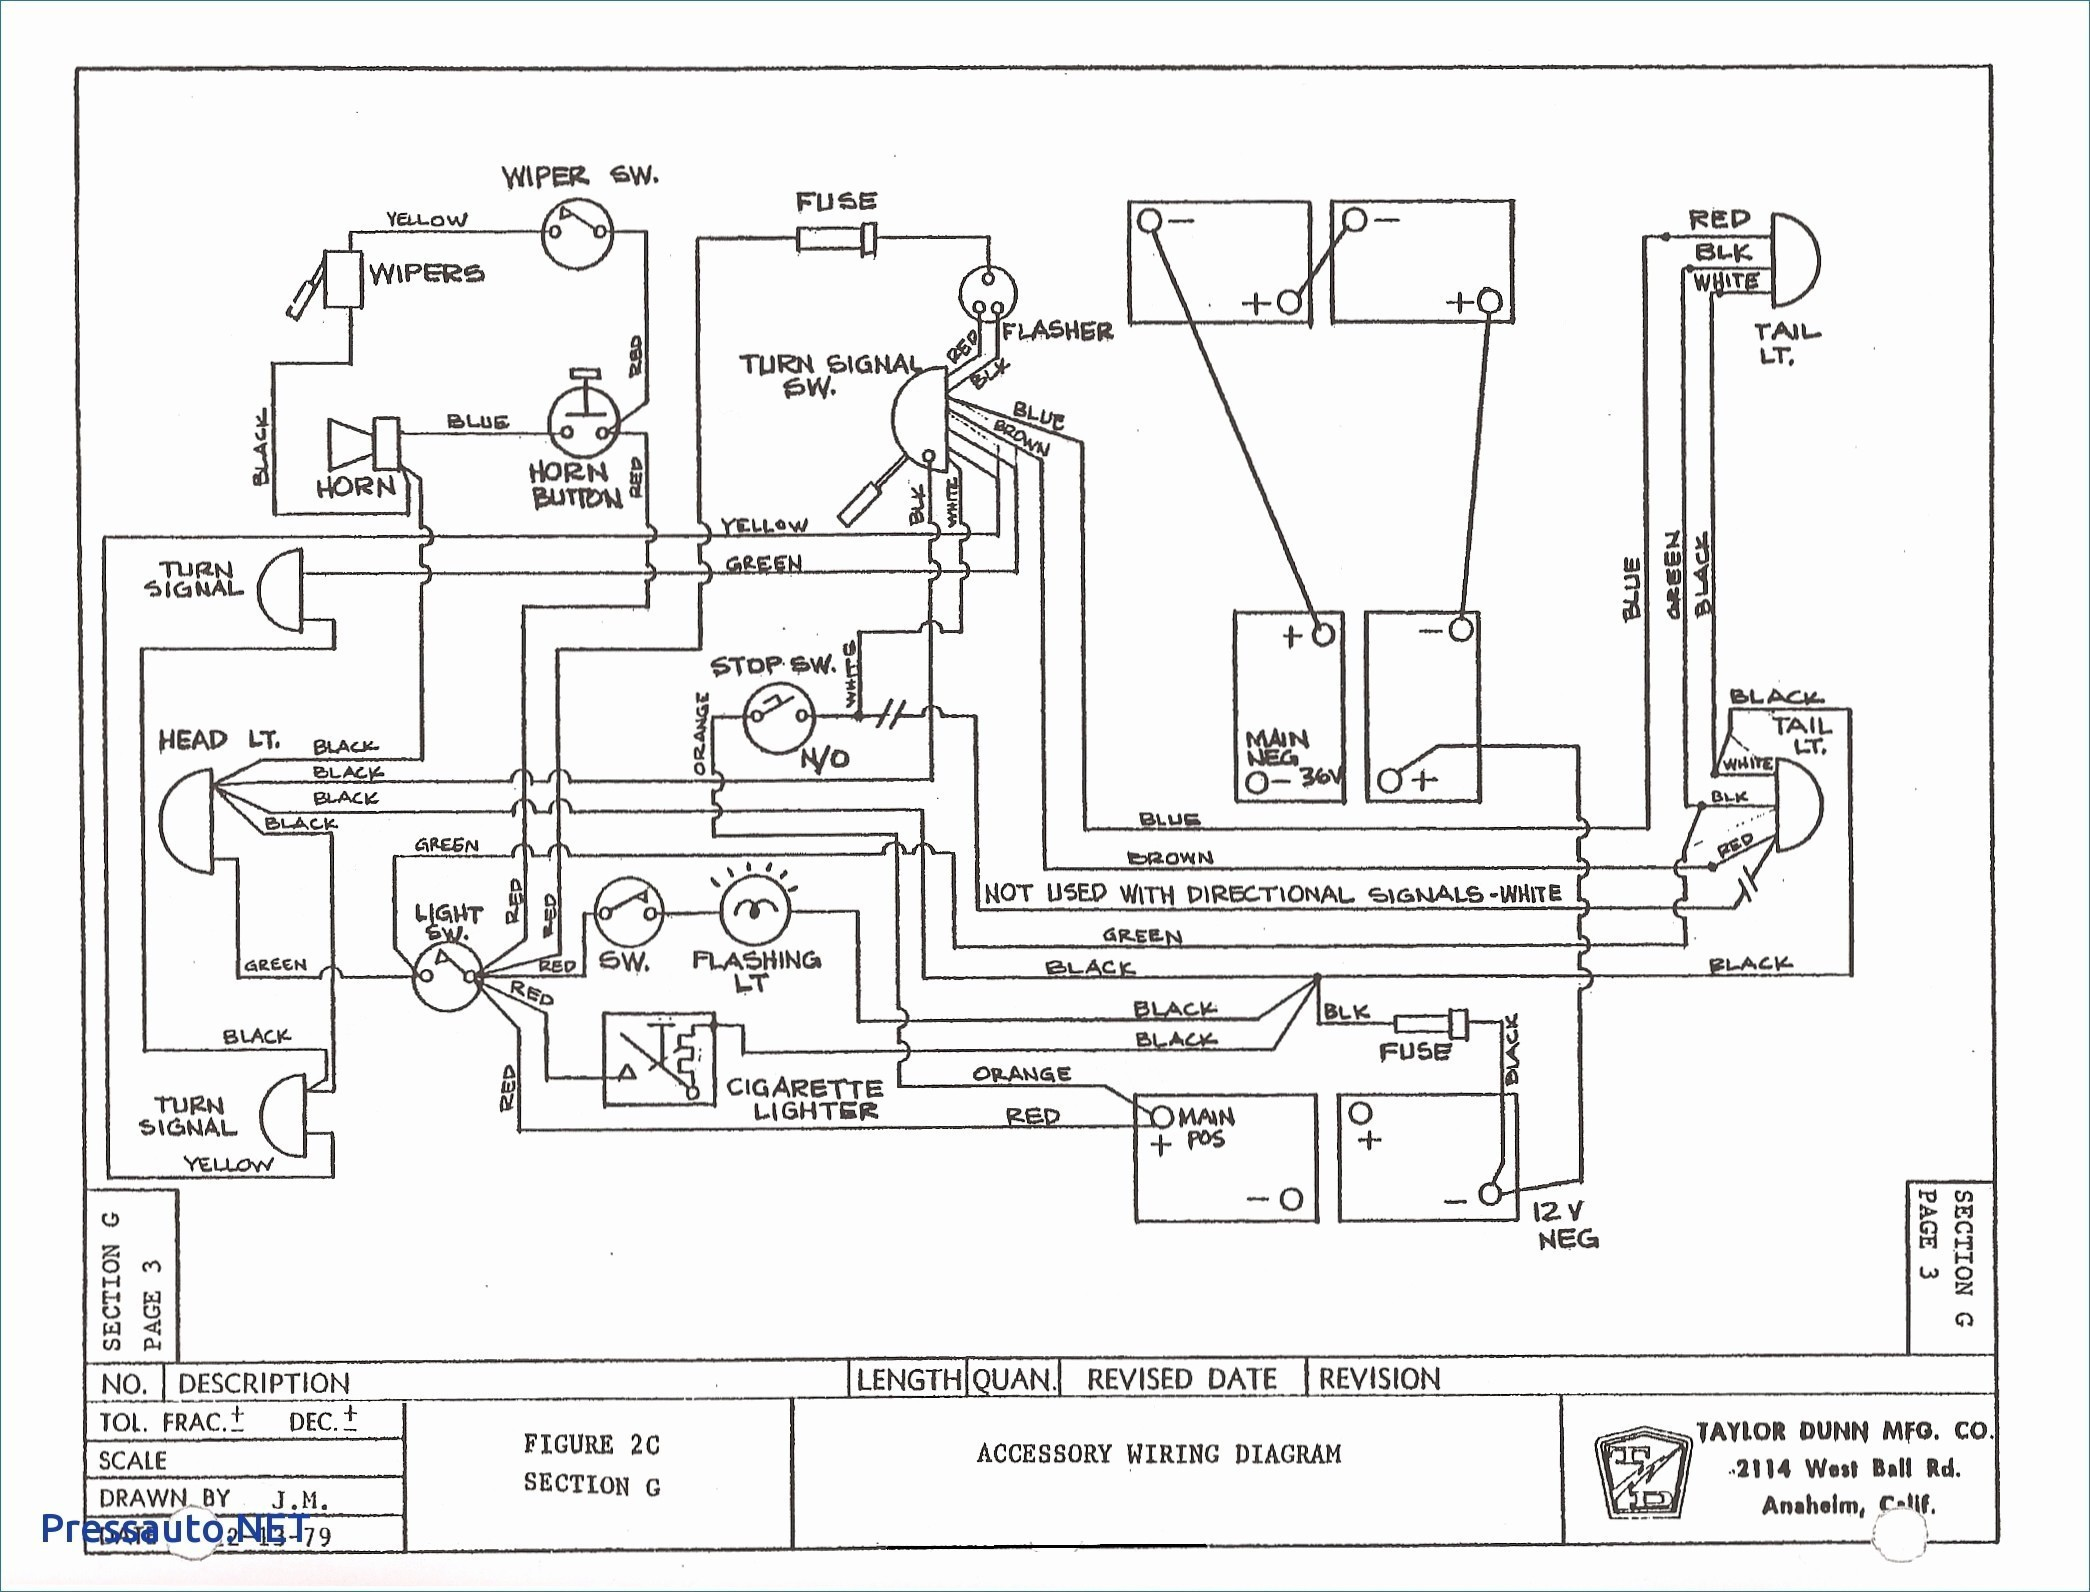 1974 Harley Davidson Golf Cart Wiring Diagram. Golf Cart ... on